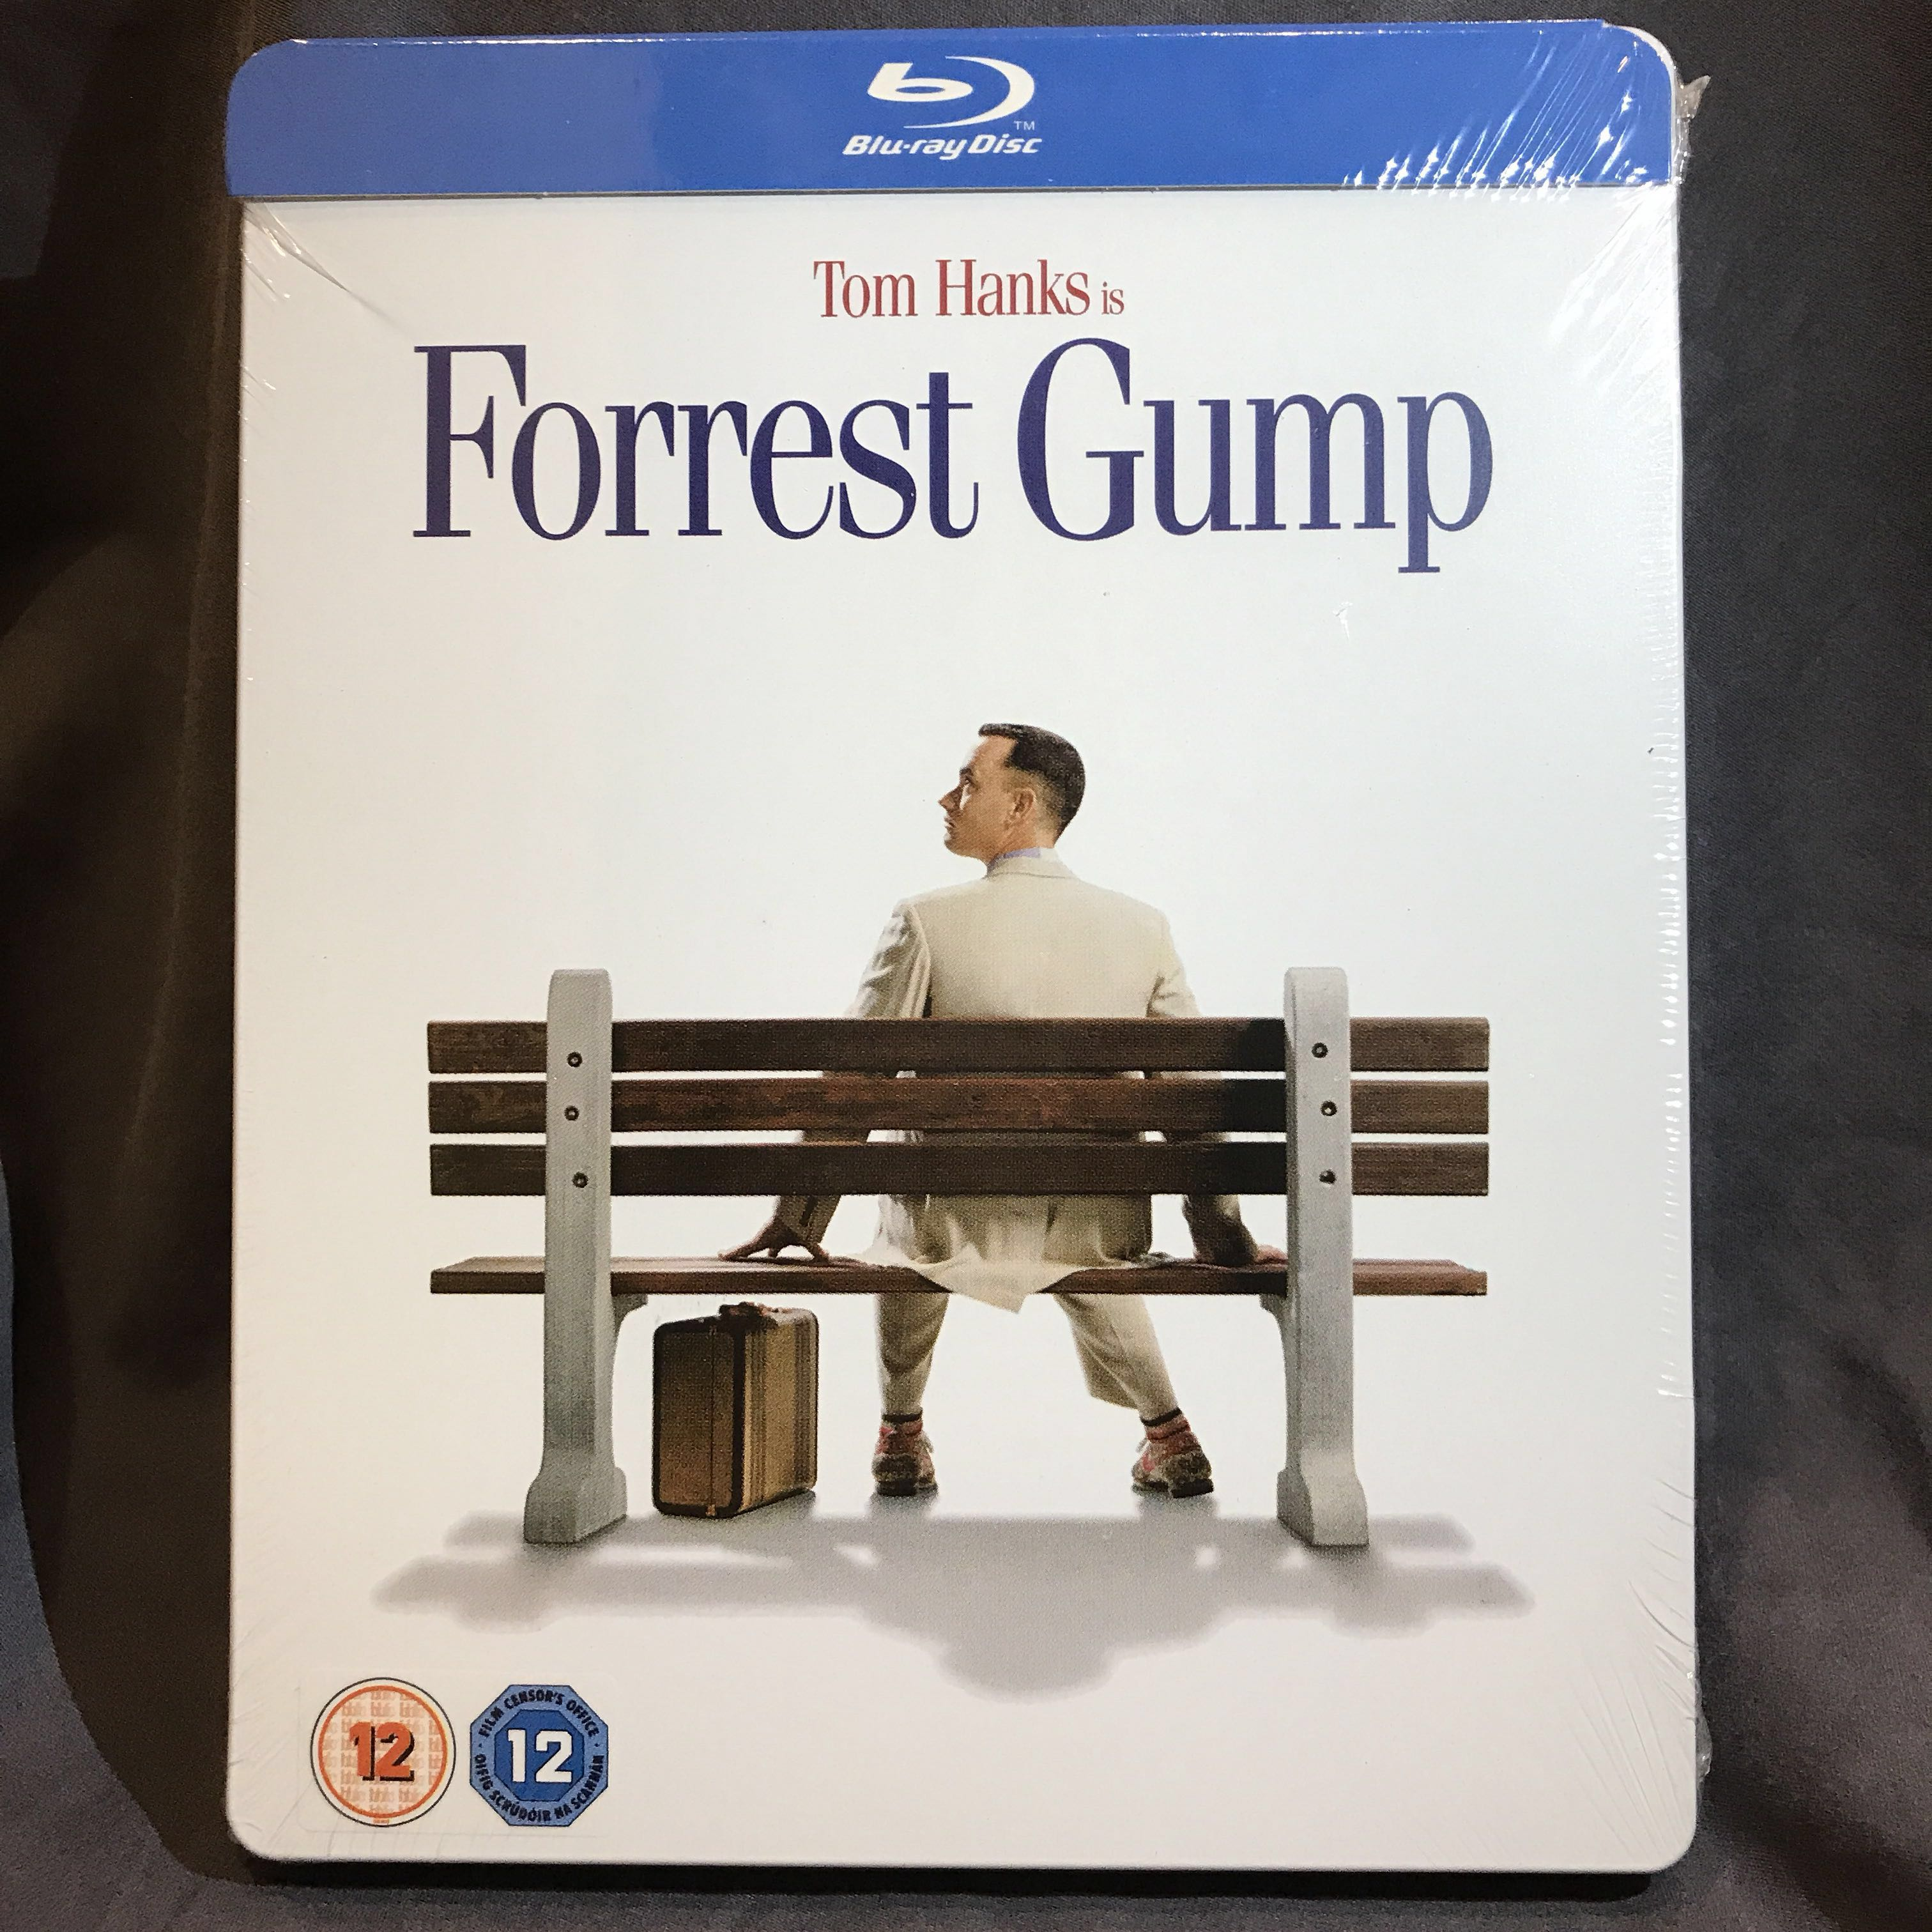 FORREST GUMP Blu-ray PLAY EXCLUSIVE STEELBOOK UK | PARAMOUNT CENTENARY EDITION Bluray OOP